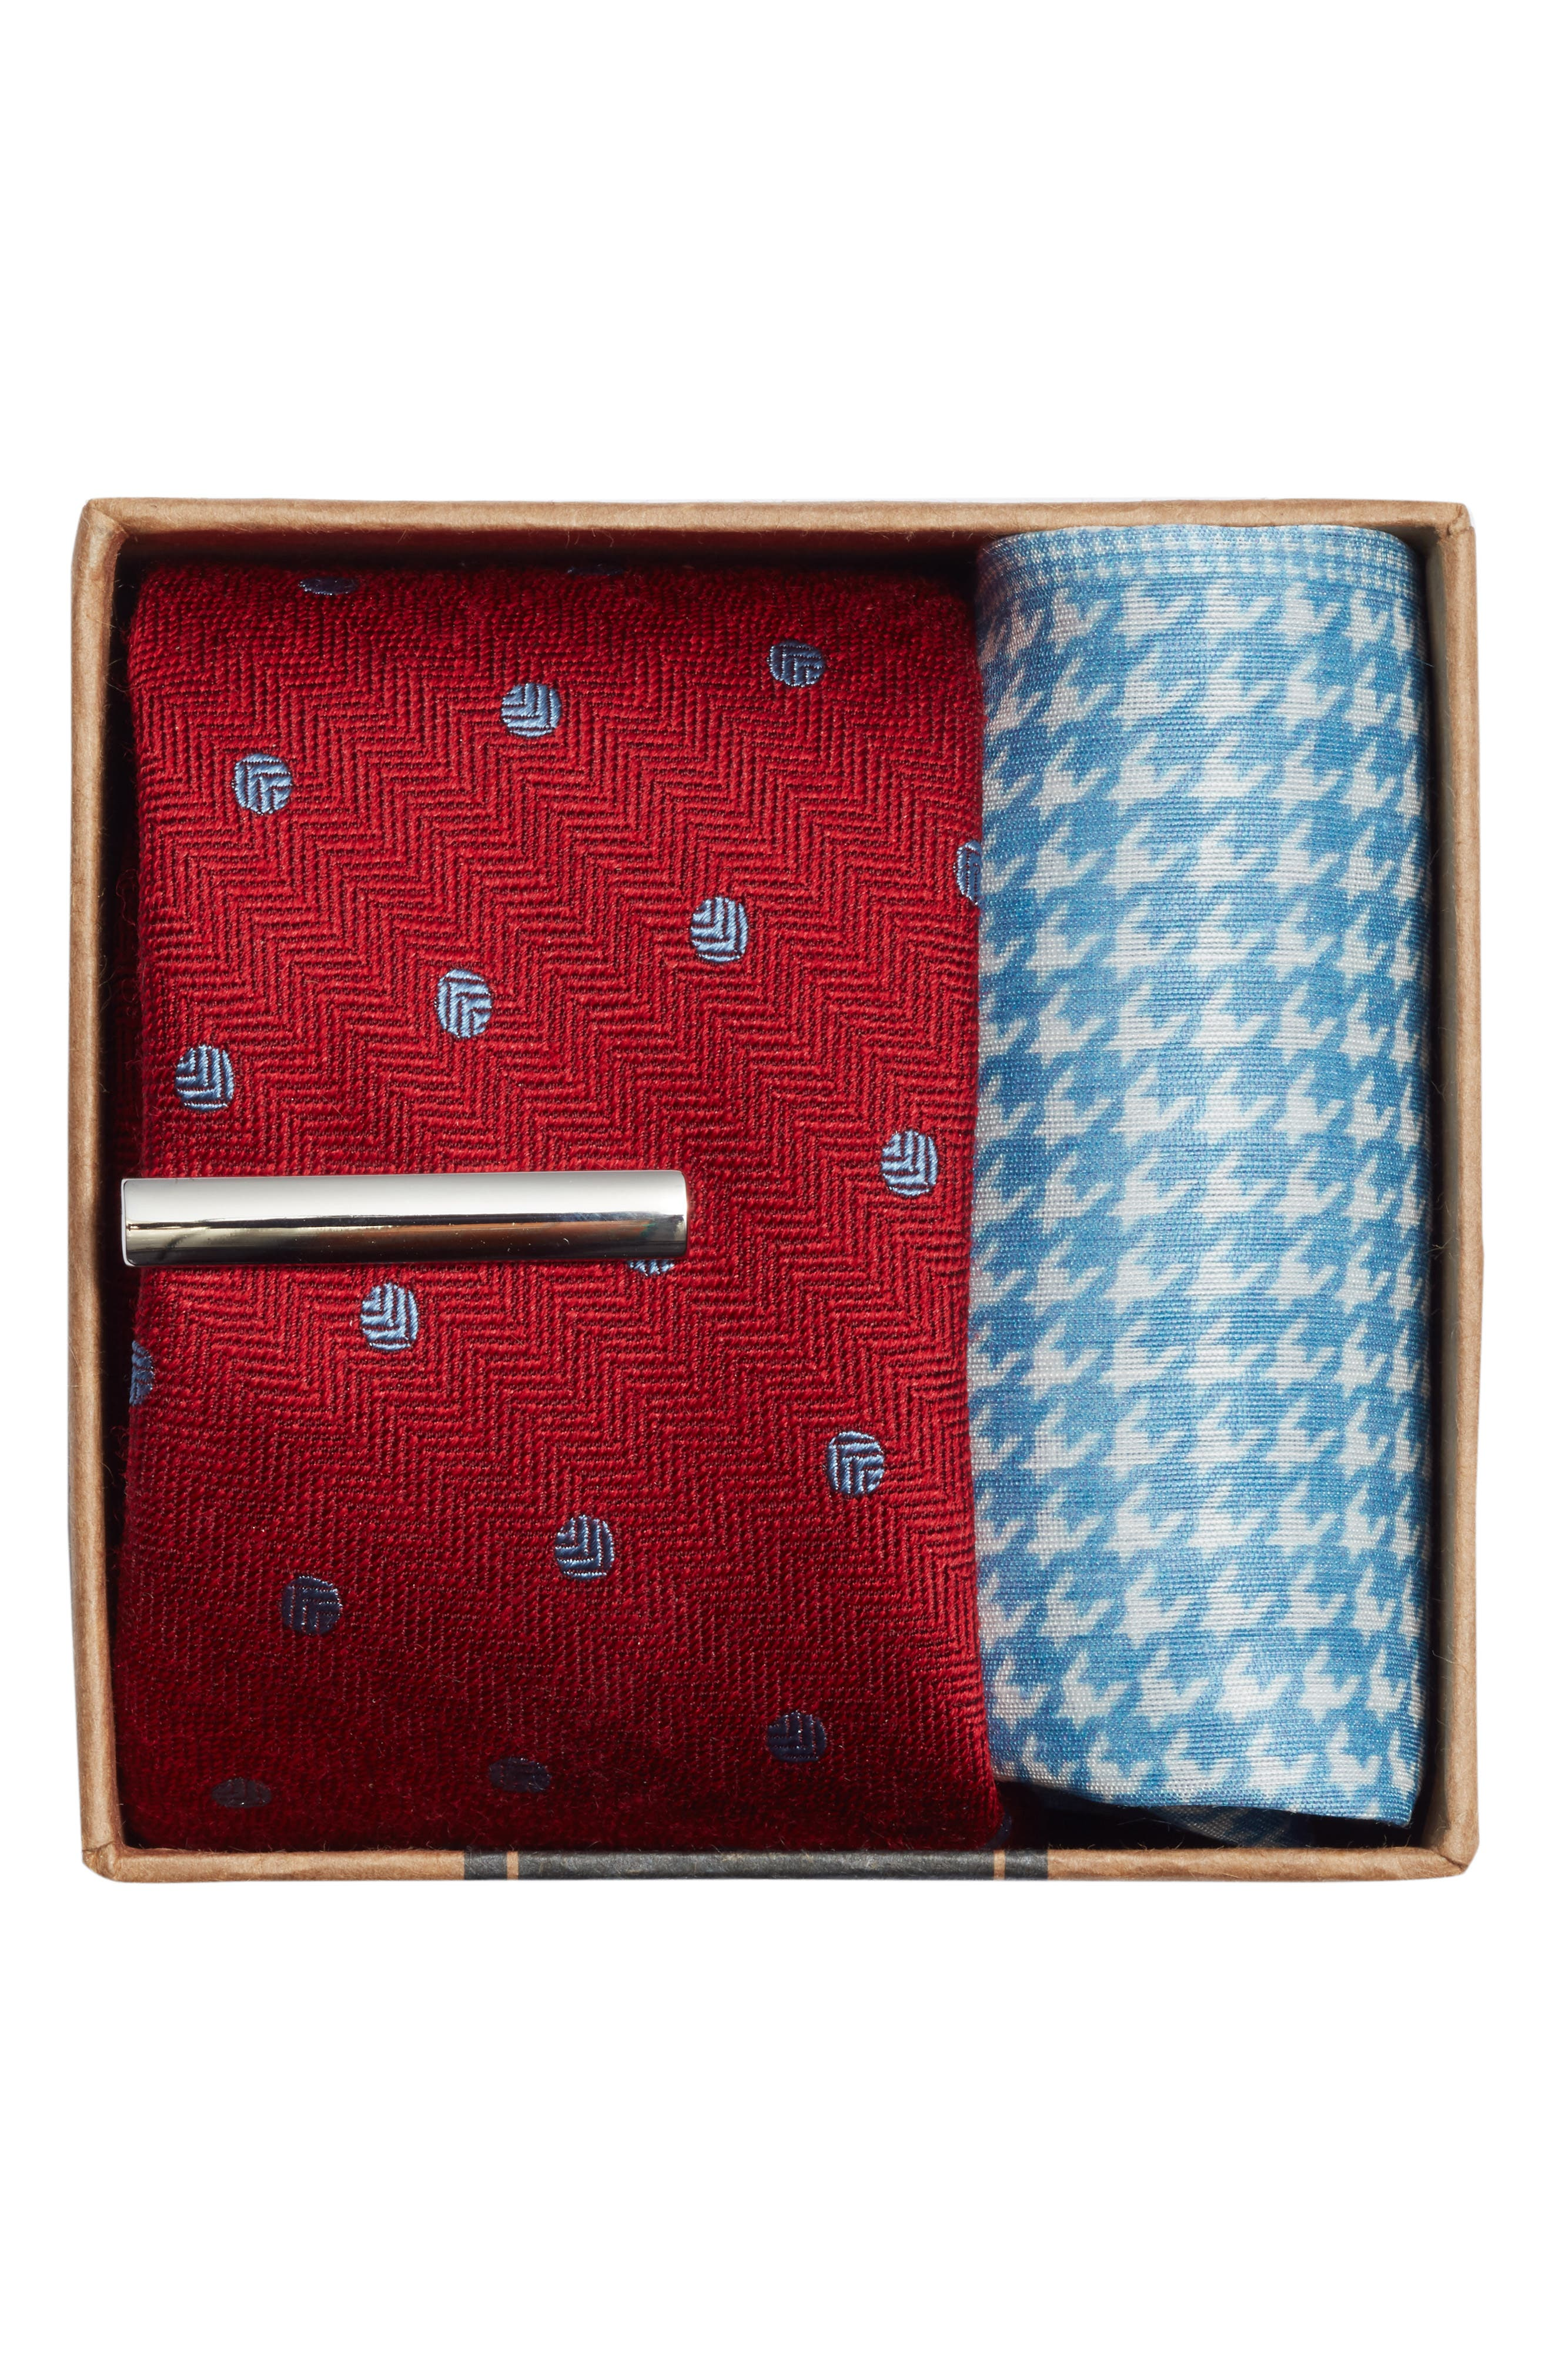 Dotted Hitch 3-Piece Skinny Tie Style Box,                             Alternate thumbnail 2, color,                             BURGUNDY